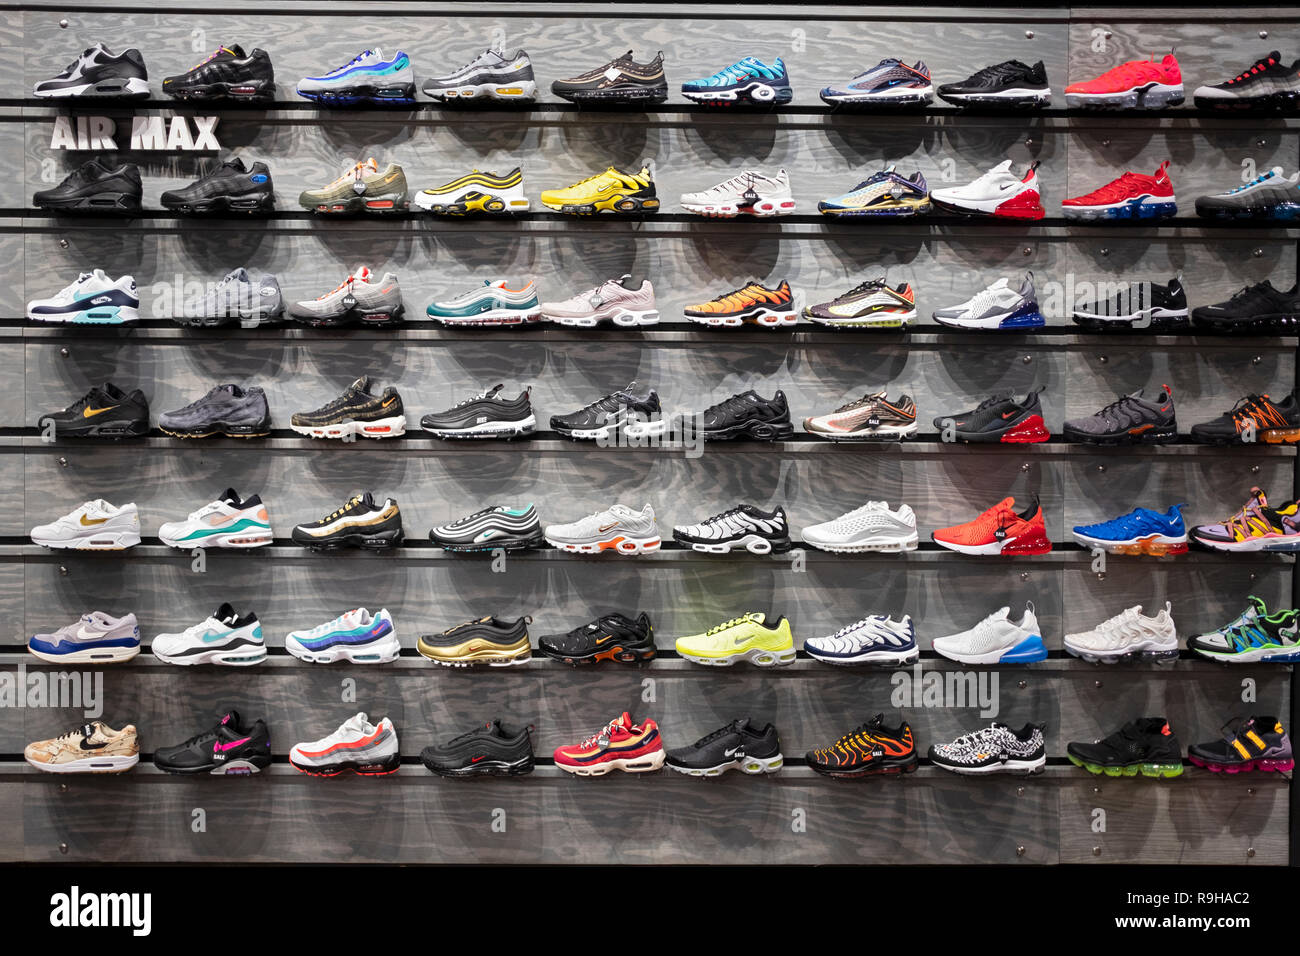 new specials official supplier crazy price Nike Air Max Stock Photos & Nike Air Max Stock Images - Alamy